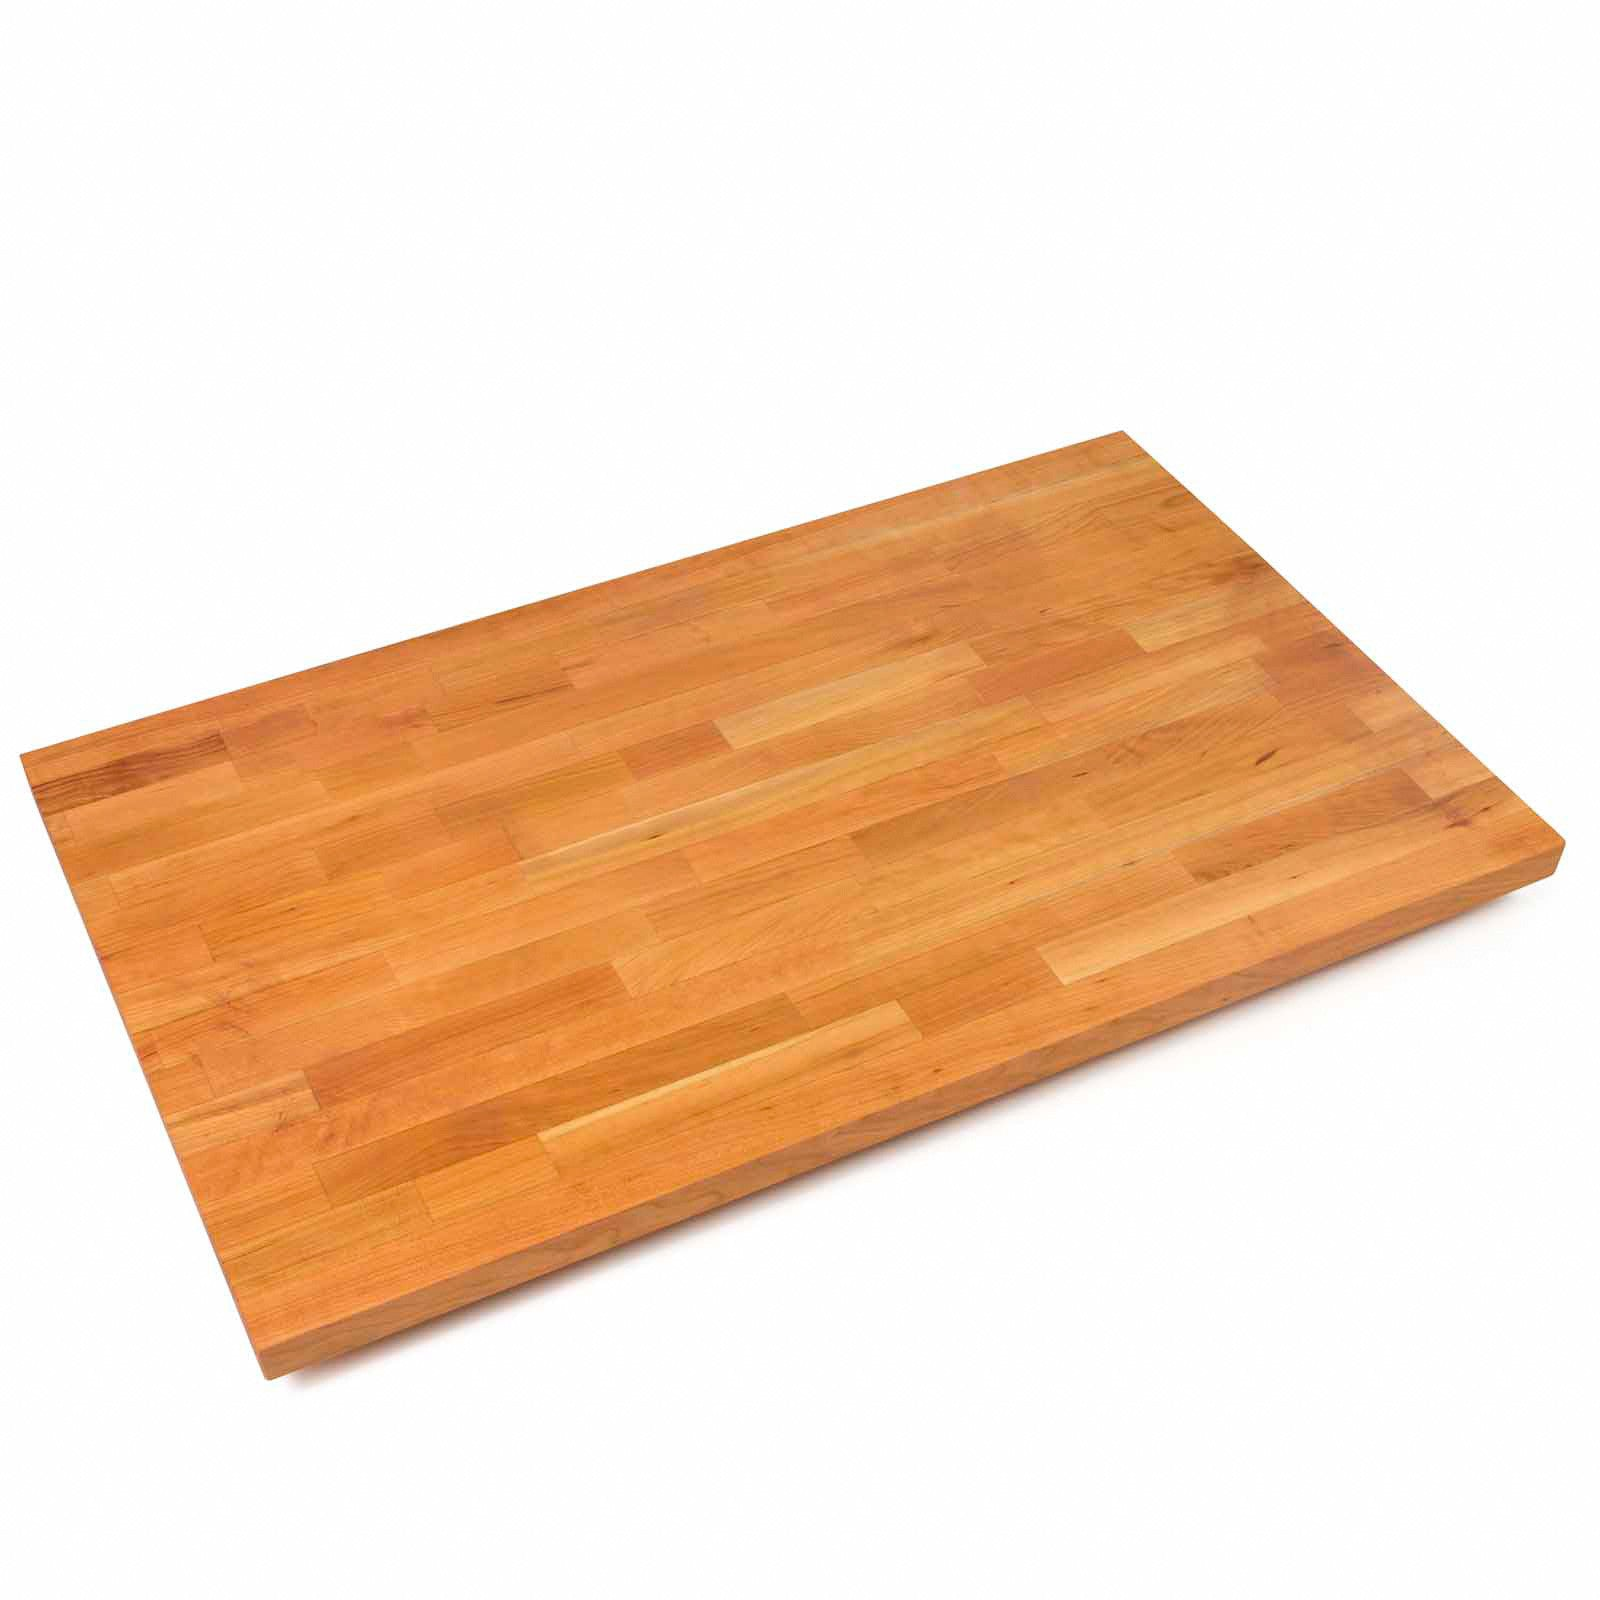 "John Boos 1 1/2"" Thick Blended Cherry Butcher Block Countertop - 38"" Wide"